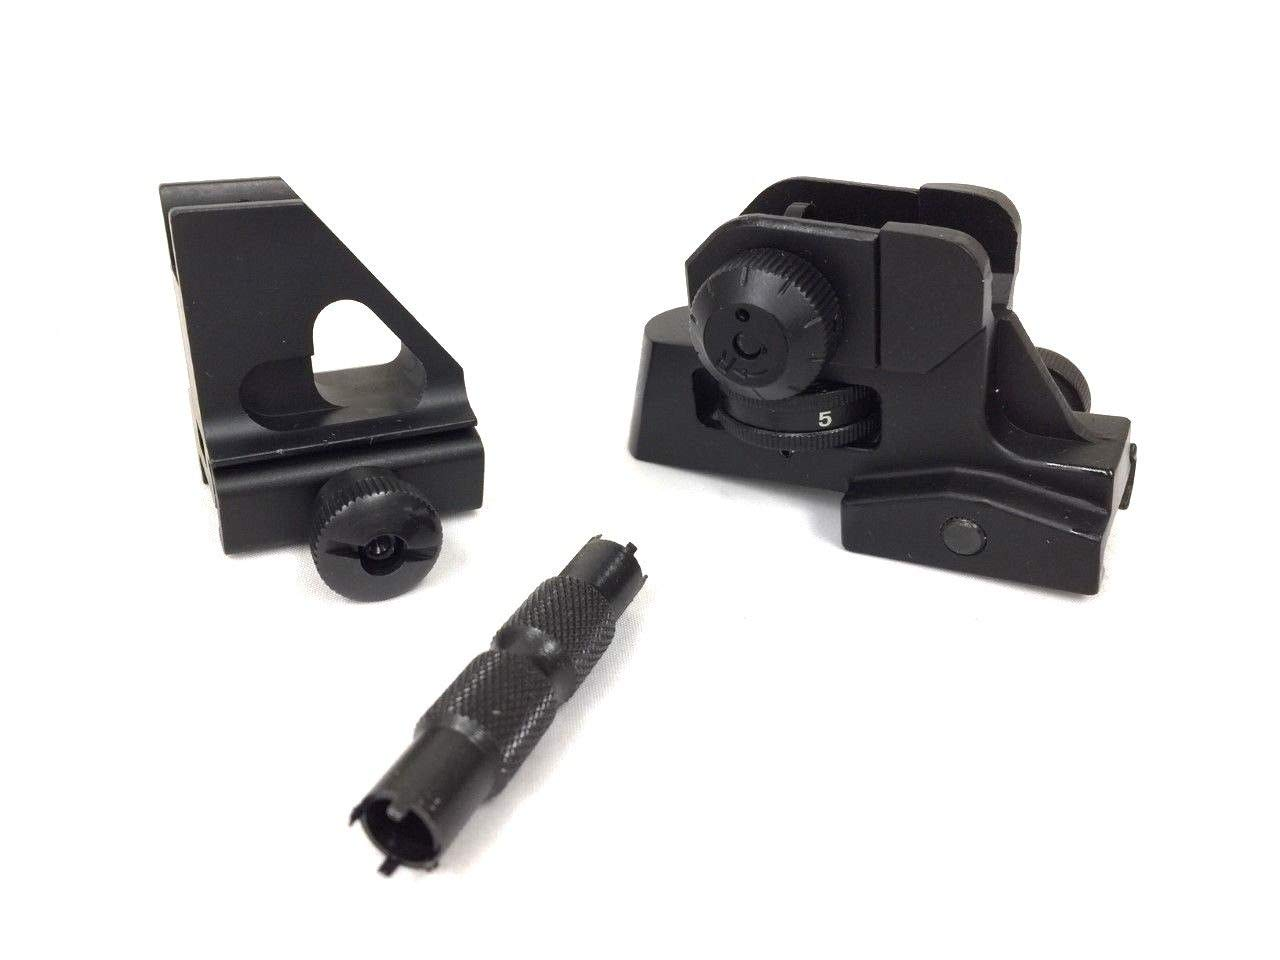 15rail- Low Profile Detachable Front Sight + Tactical Match Rear Sight with Front Sight Adjustment Tool